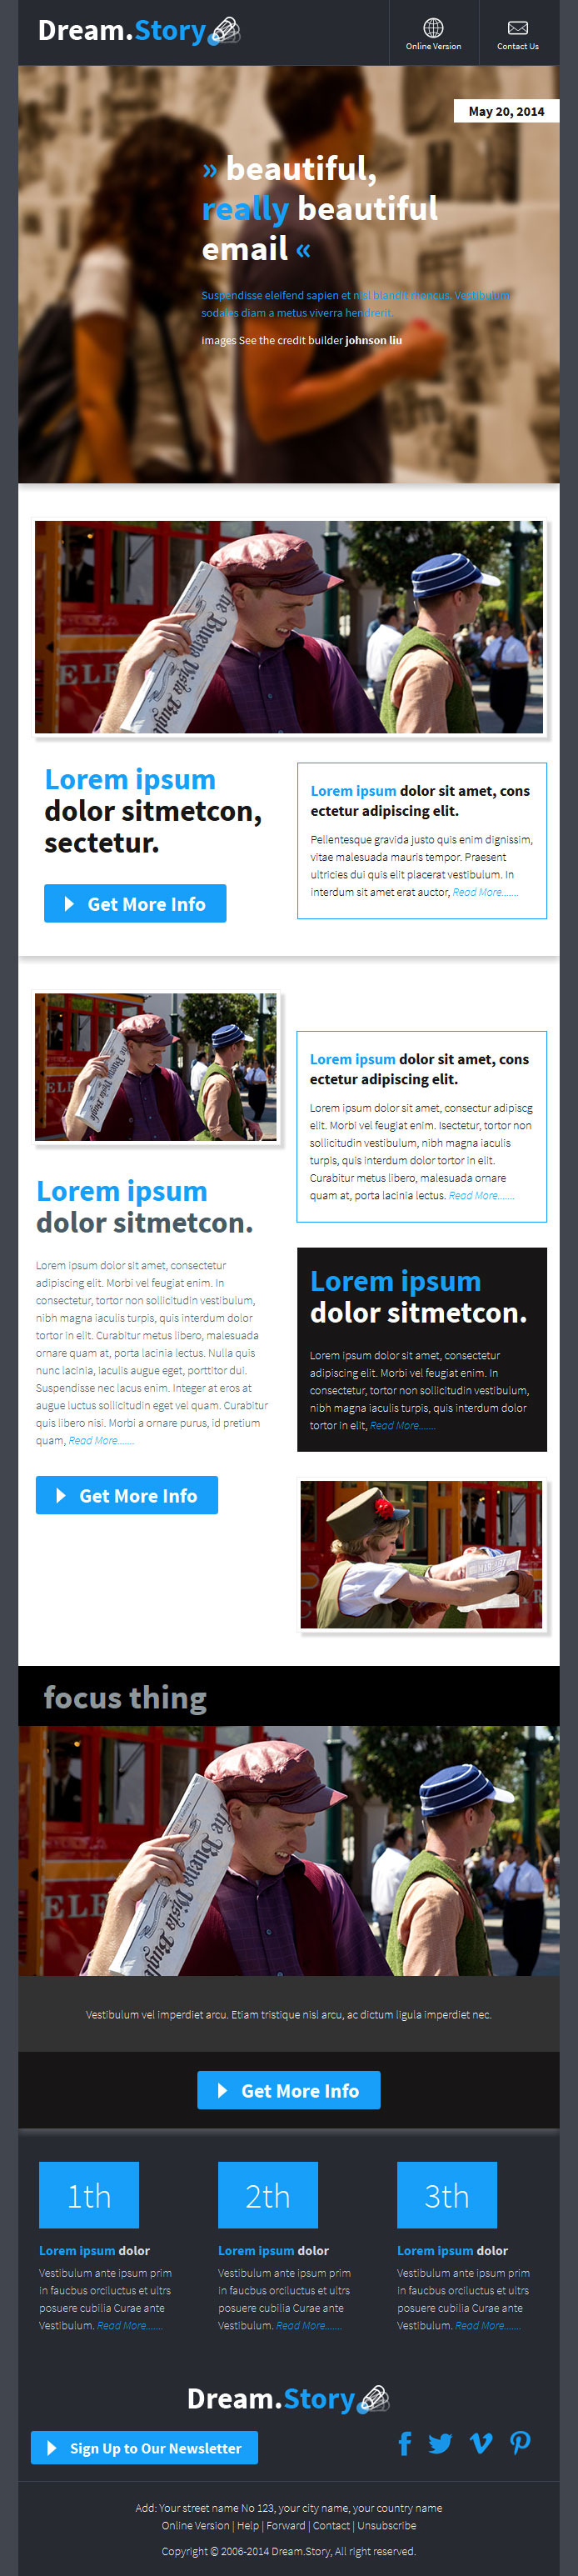 Dreamory responsive email template builder by digith story responsive email template builder email templates marketing 01previewg 02previewg pronofoot35fo Image collections